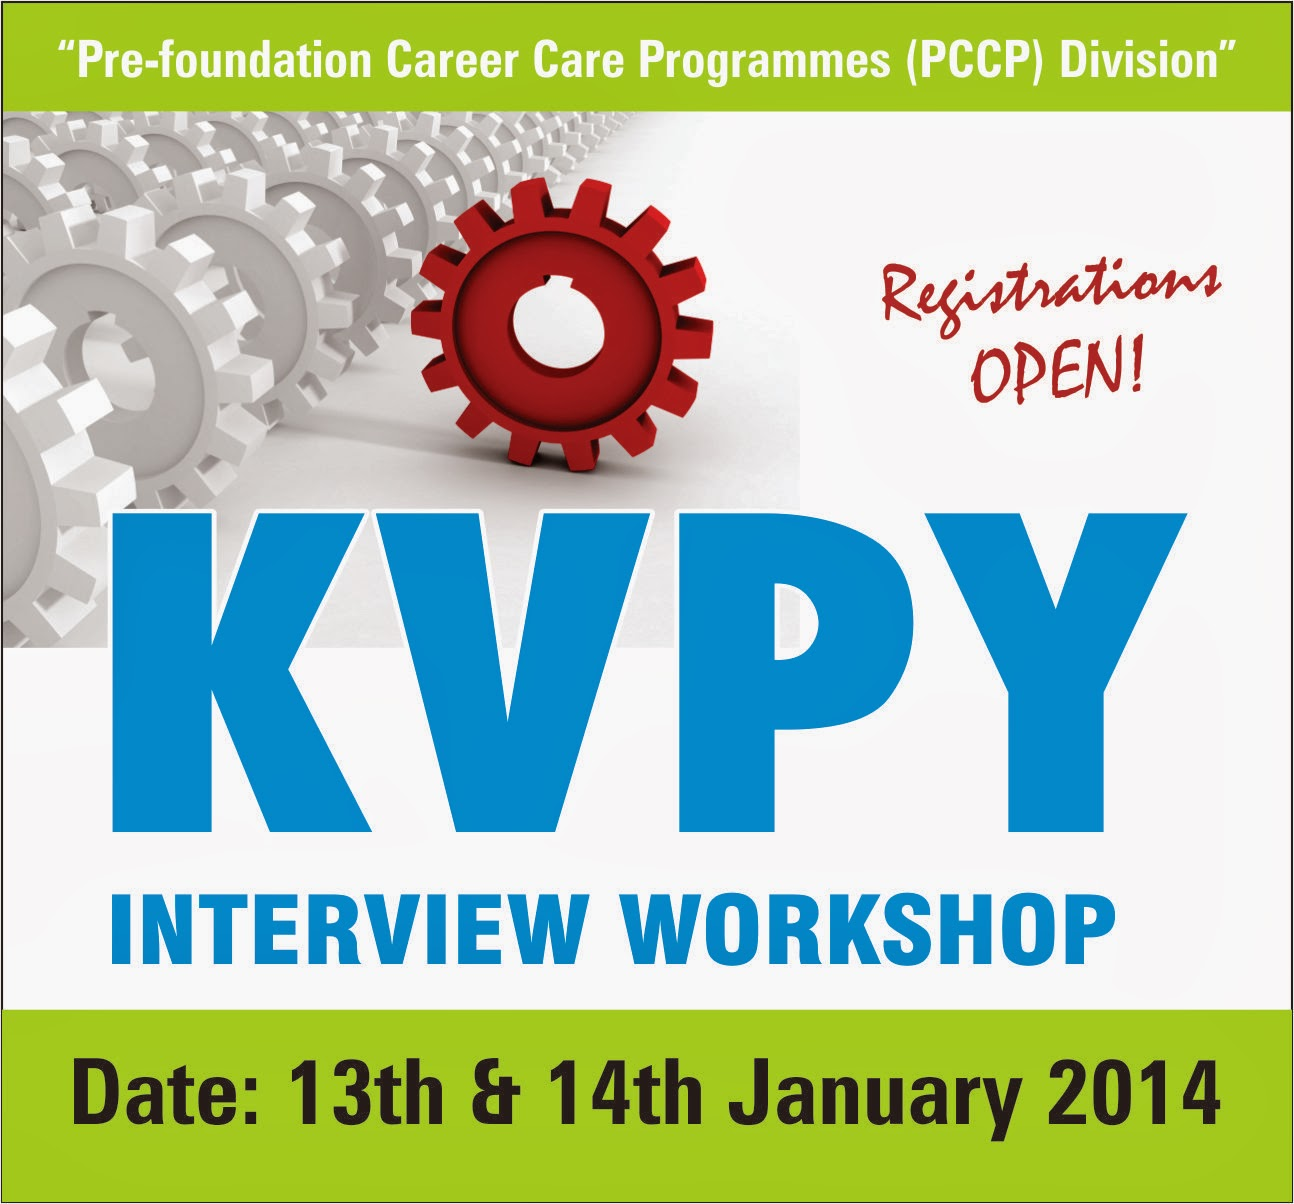 KVPY Interview Workshop